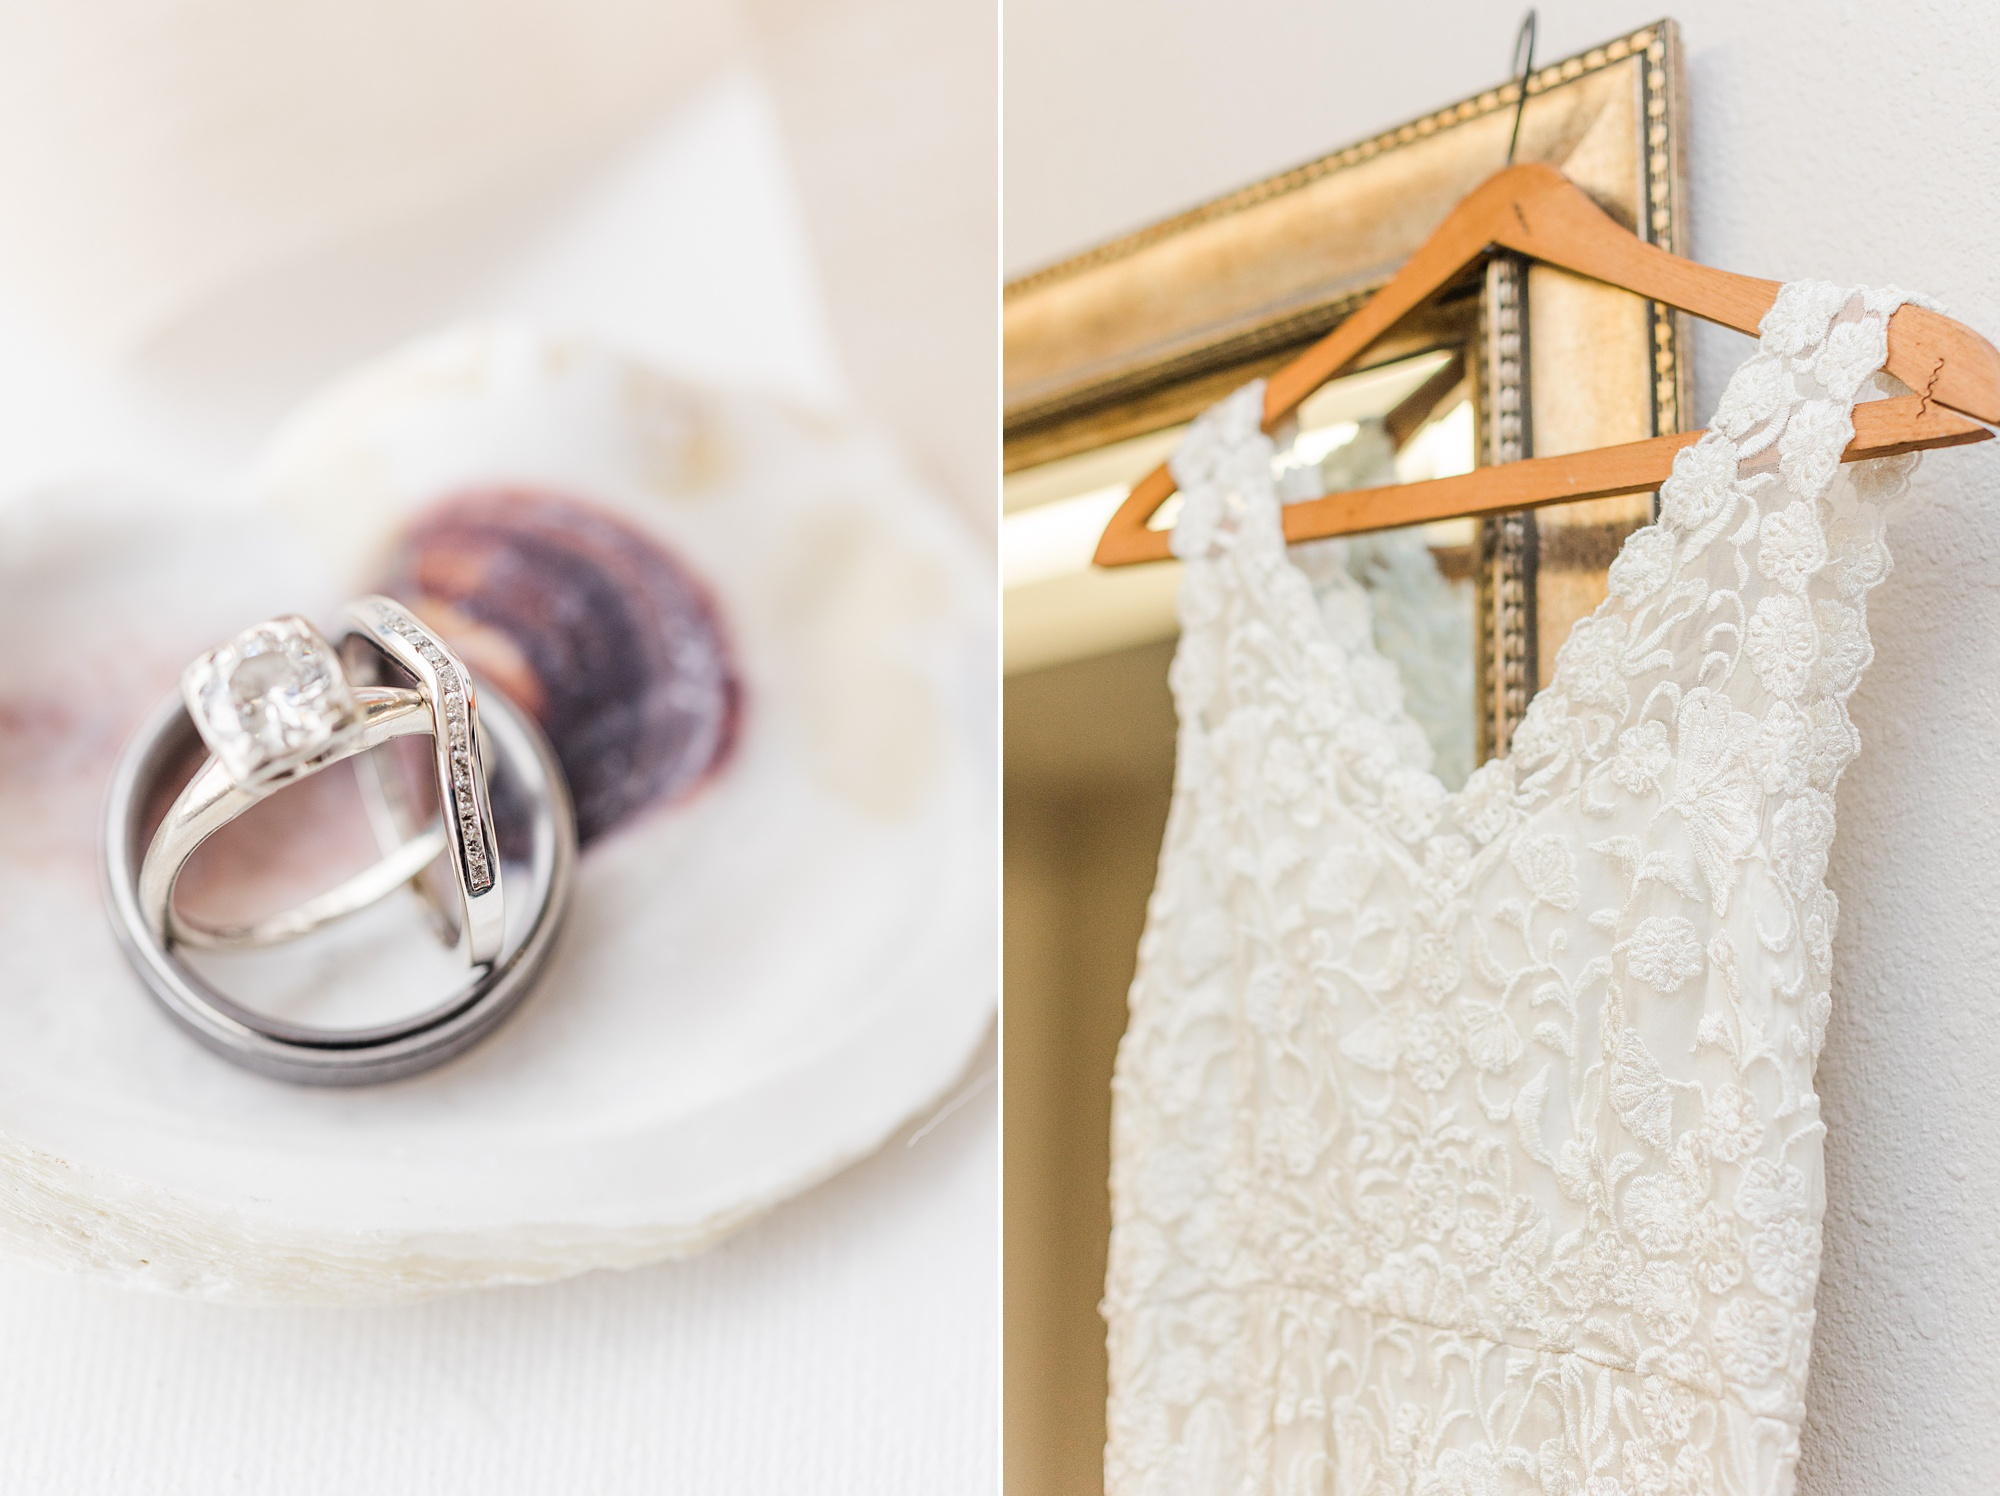 bride's wedding dress and rings on oyster shell